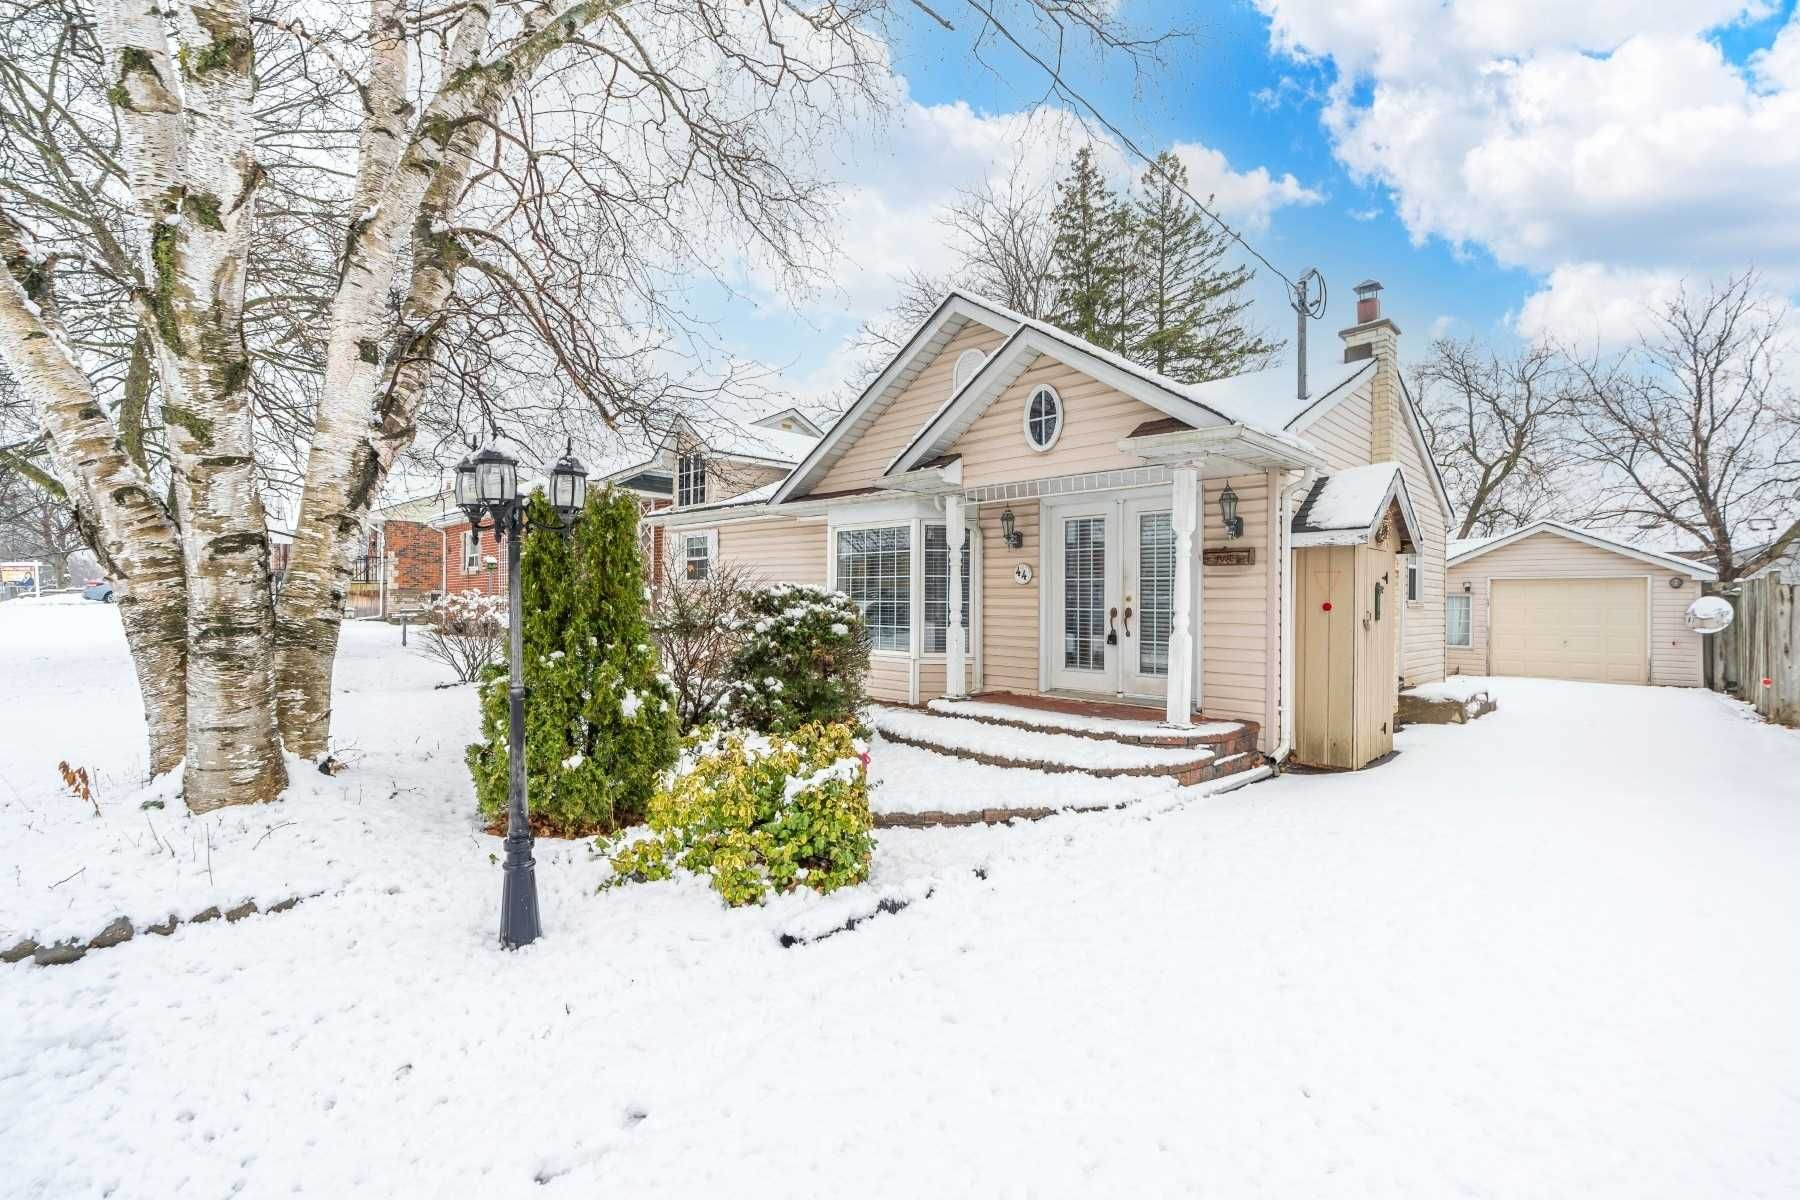 Main Photo: 44 Eastlawn Street in Oshawa: Donevan House (Bungalow) for sale : MLS®# E5061961